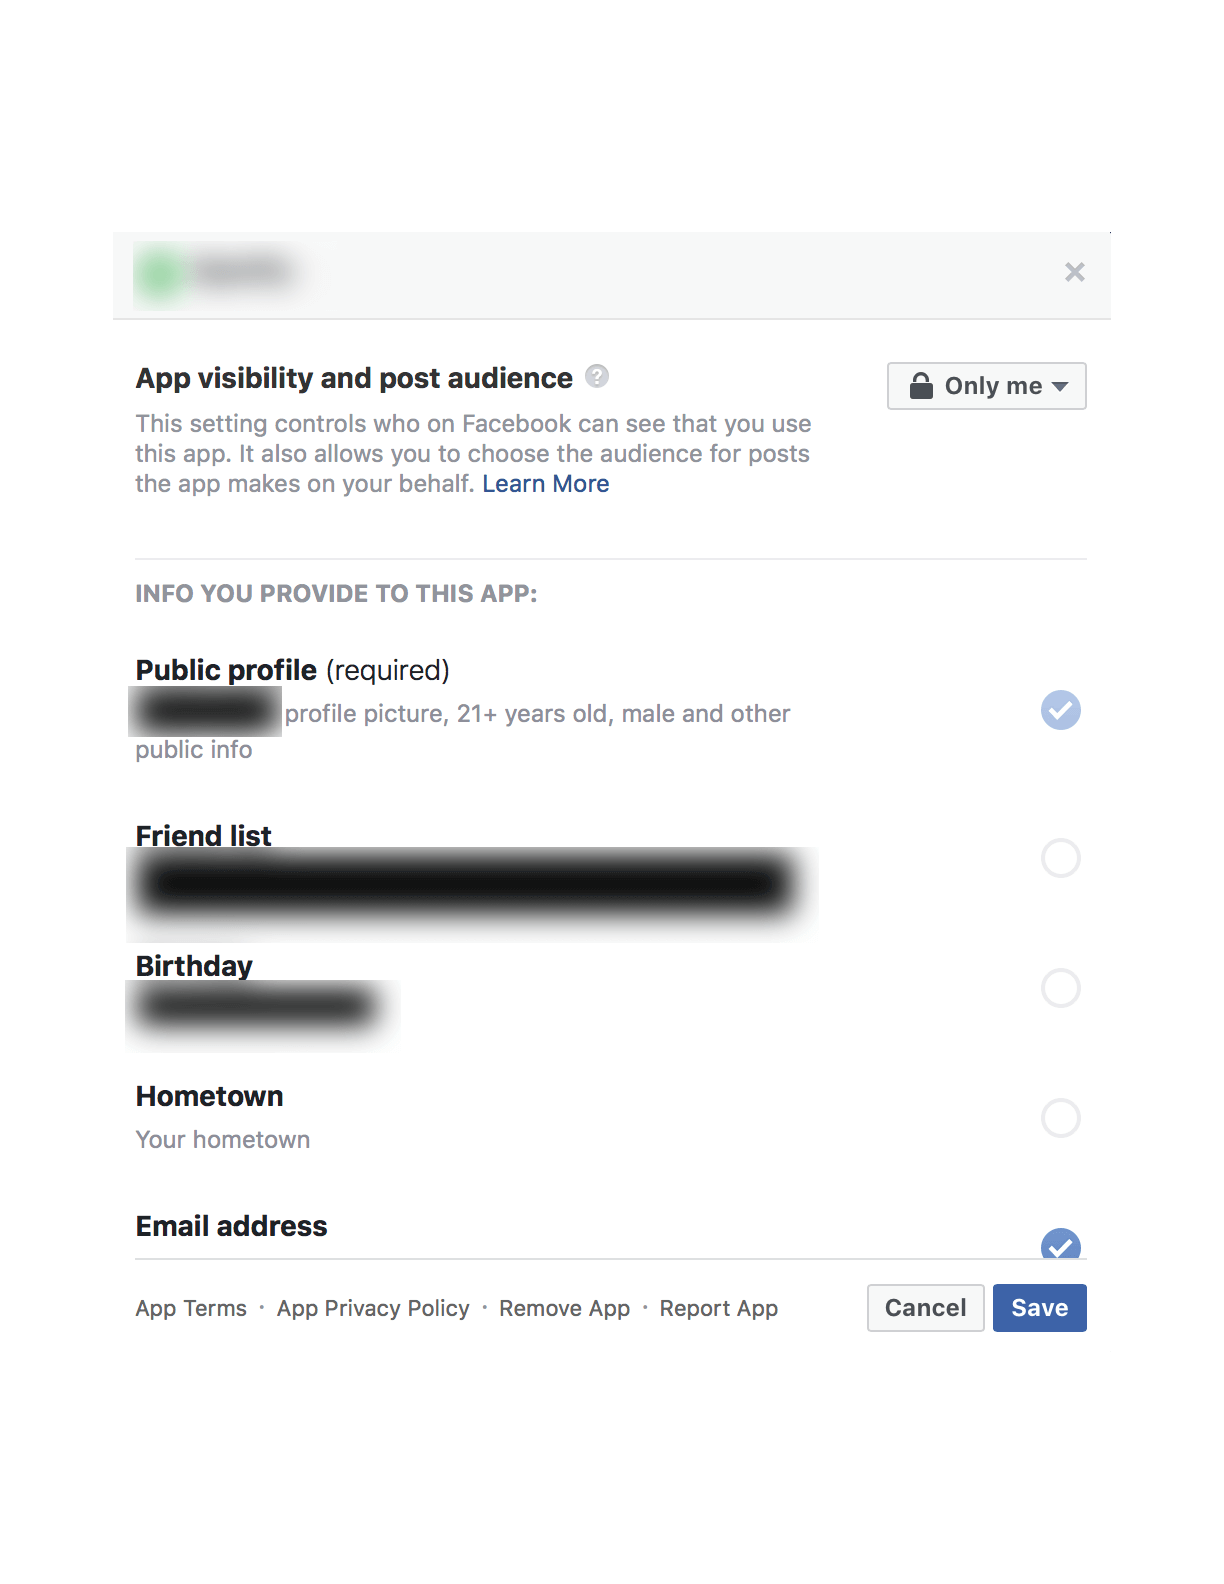 Facebook also shows you the details of what happens if you turn this  setting off: